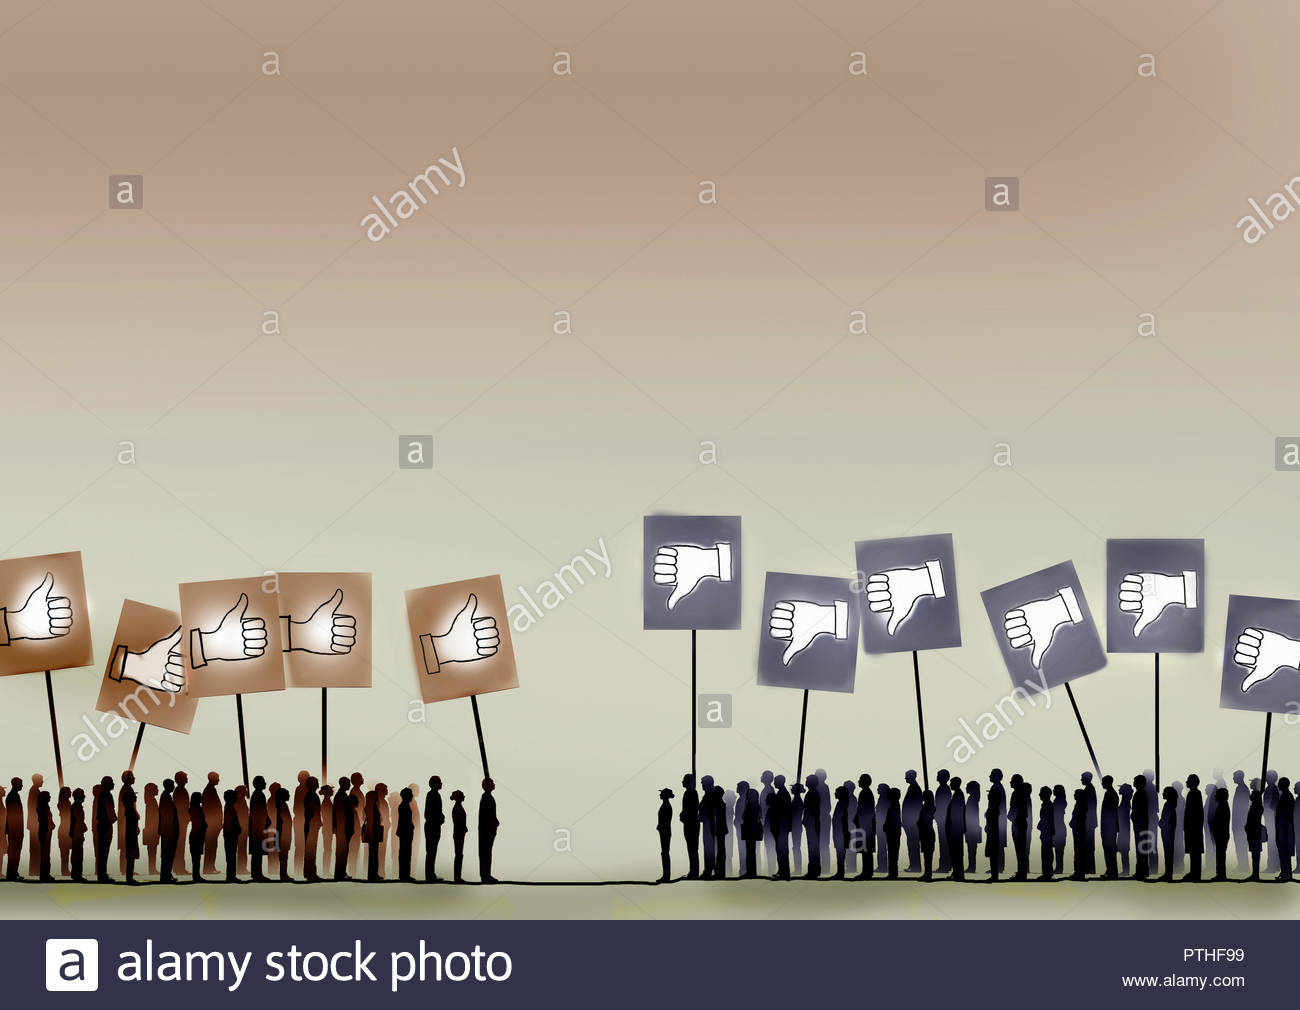 Crowds holding placards with opposing opinions - Stock Image